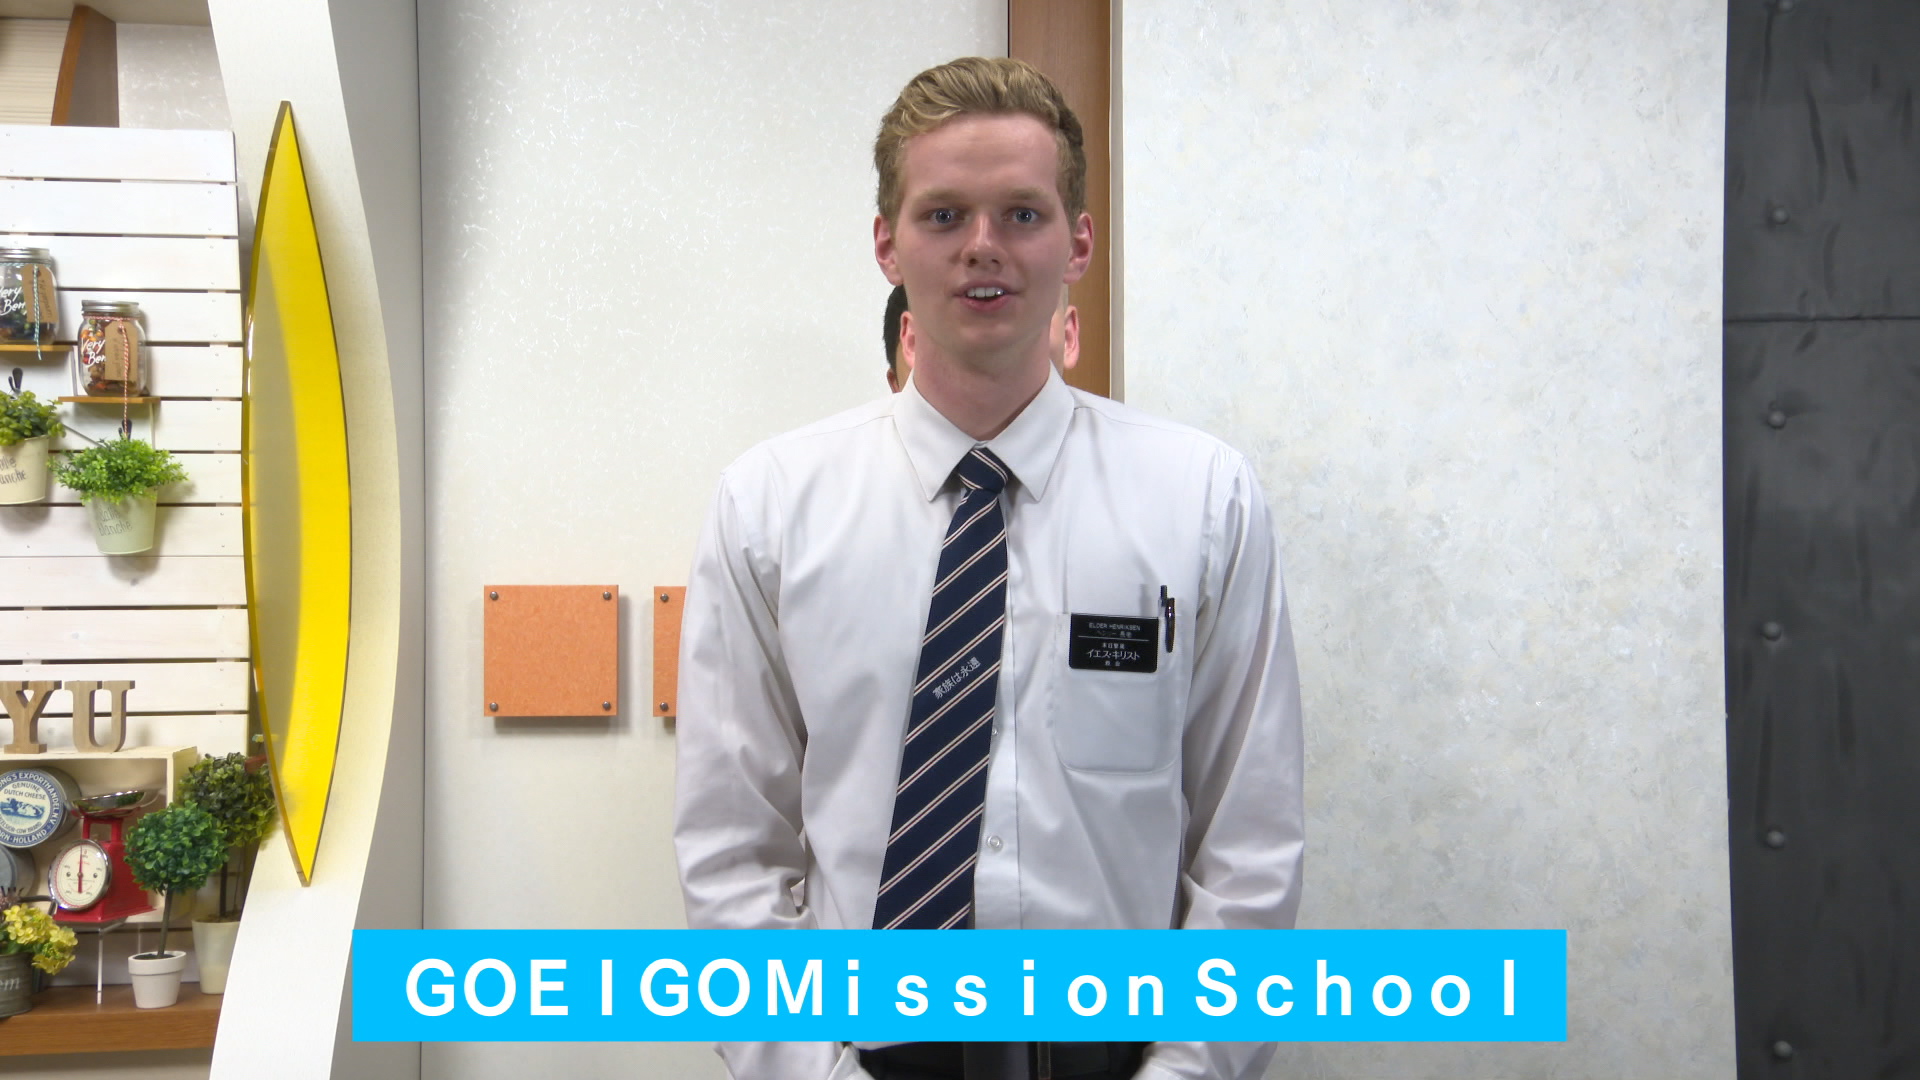 GO EIGO Mission School